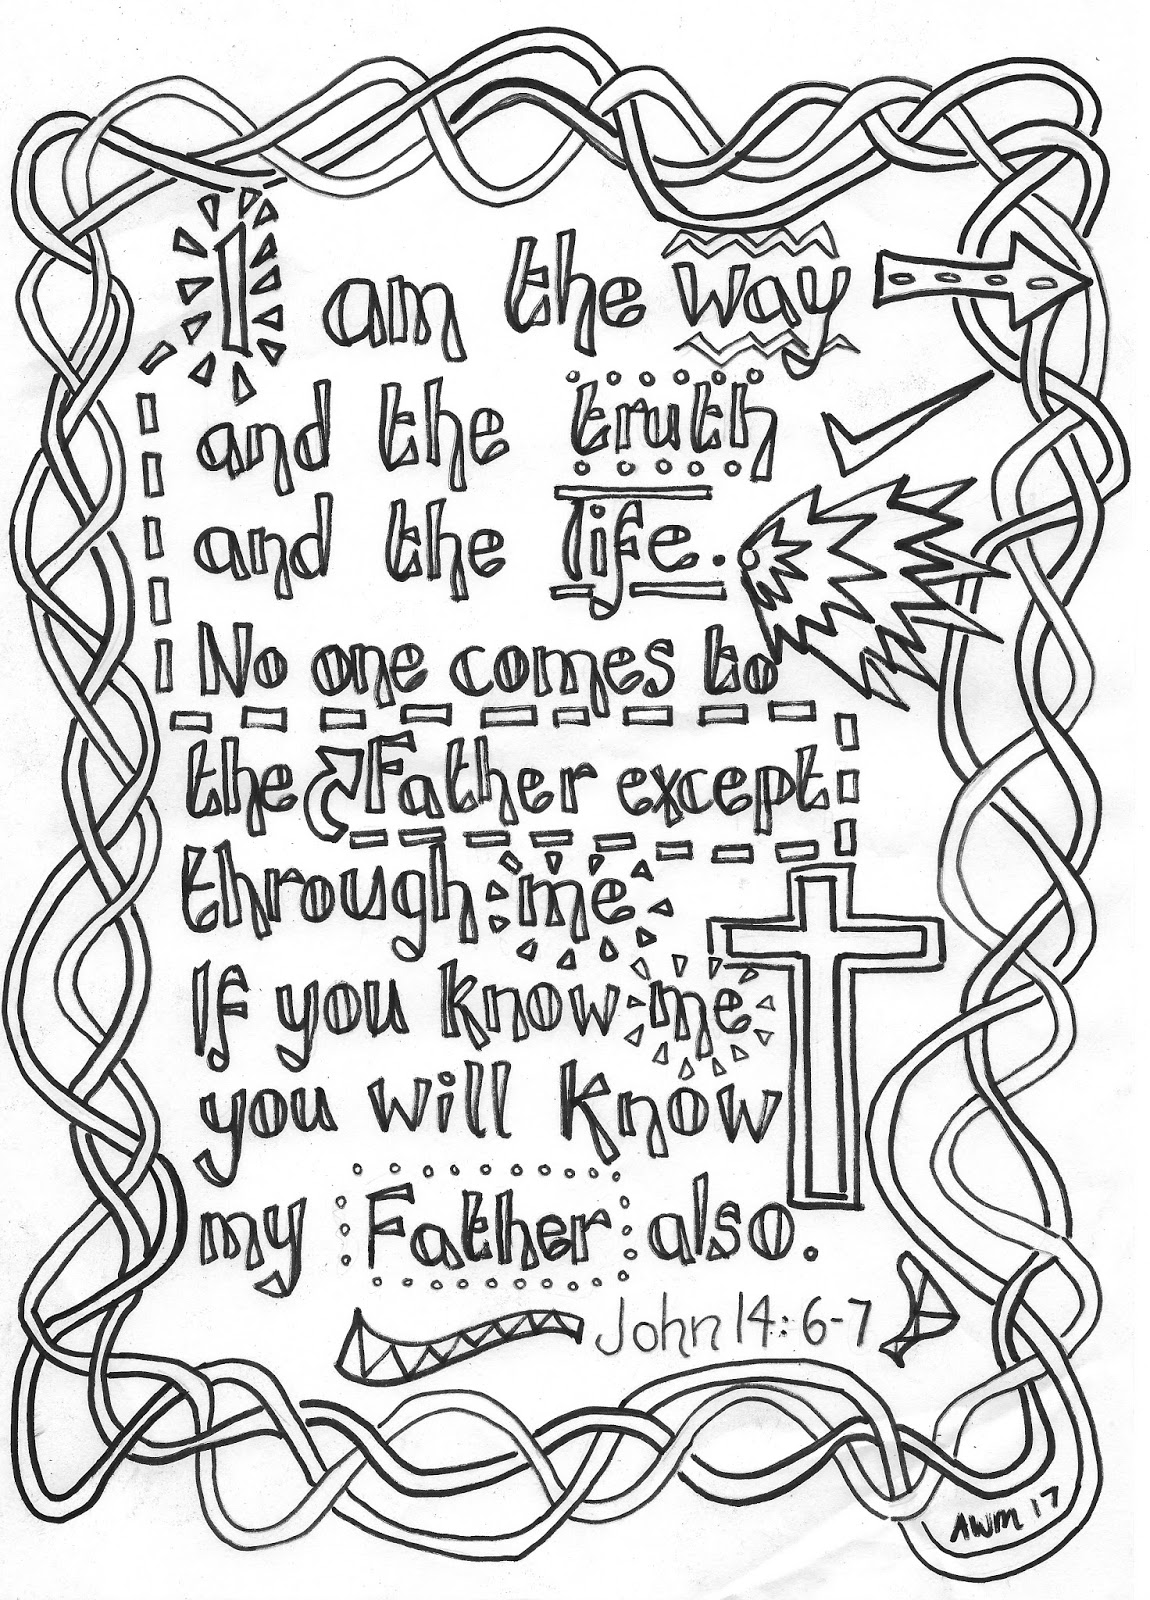 Flame Creative Children S Ministry Reflective Colouring Sheet John 14 6 7 I Am The Way The